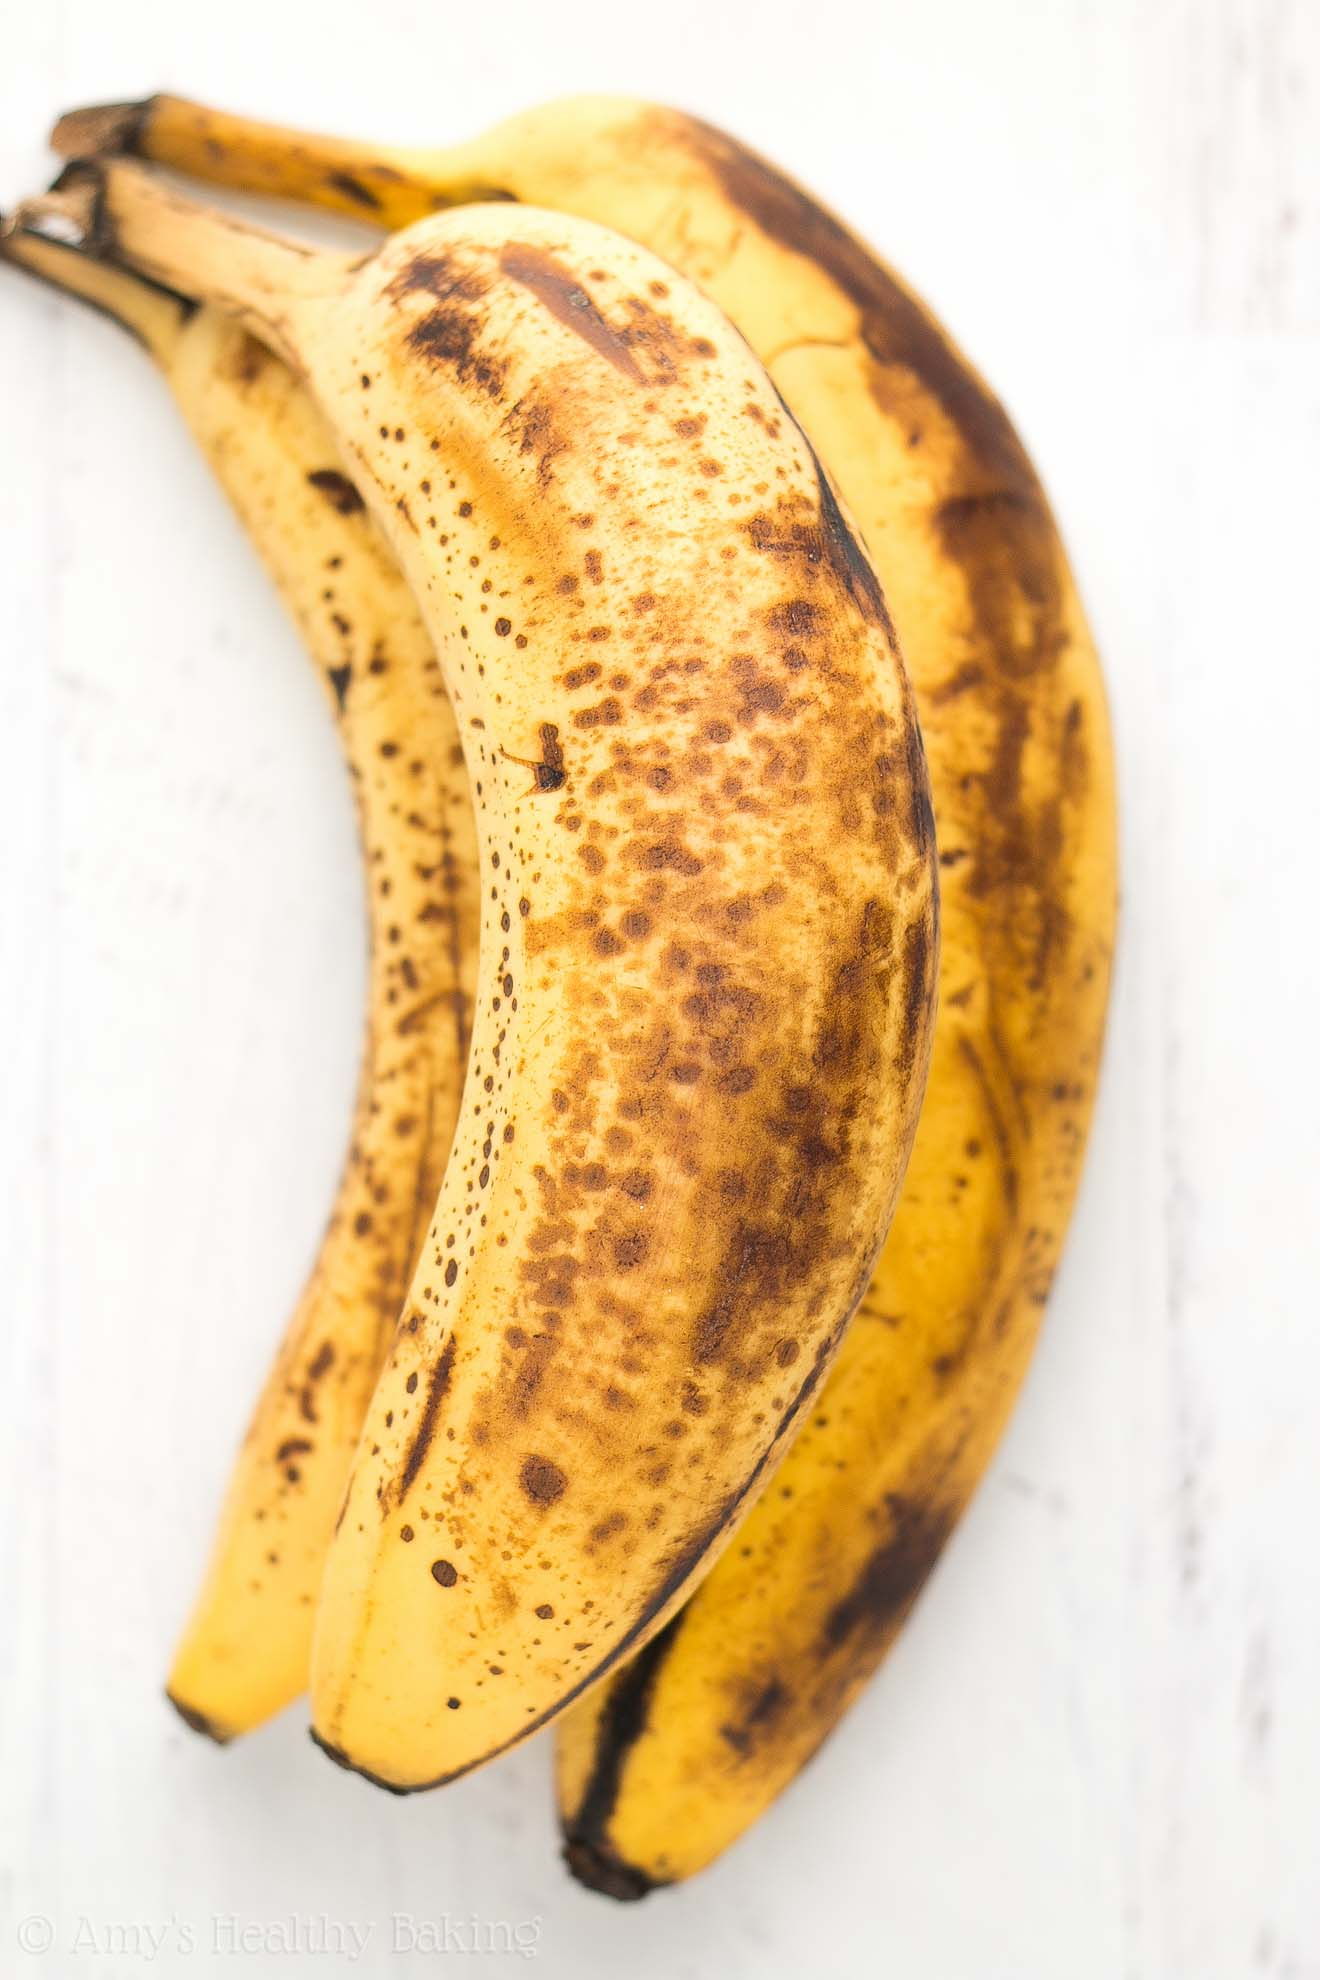 Ripe bananas, perfect for baking